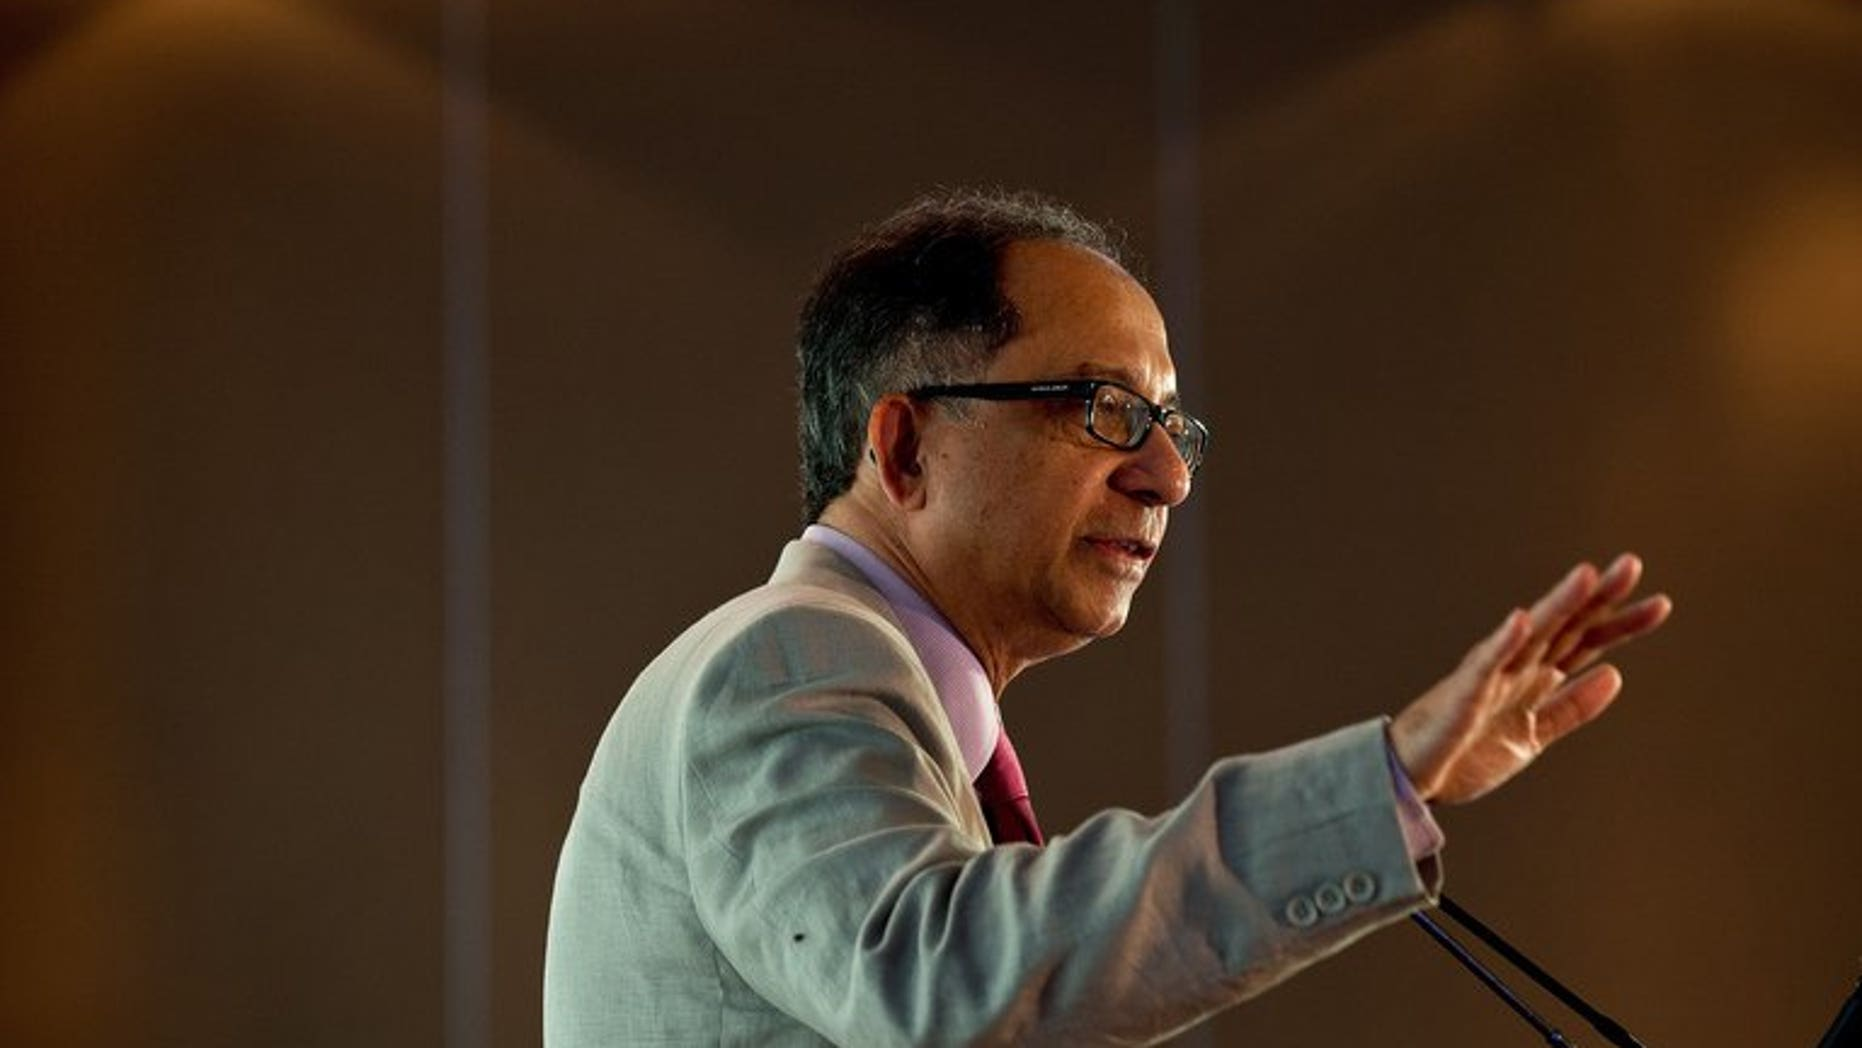 """World Bank Chief Economist Kaushik Basu gestures as he presents a lecture in New Delhi on Monday. He said the gloom surrounding India's economy had been """"overplayed"""" and the country was not in danger of a full-blown crisis."""